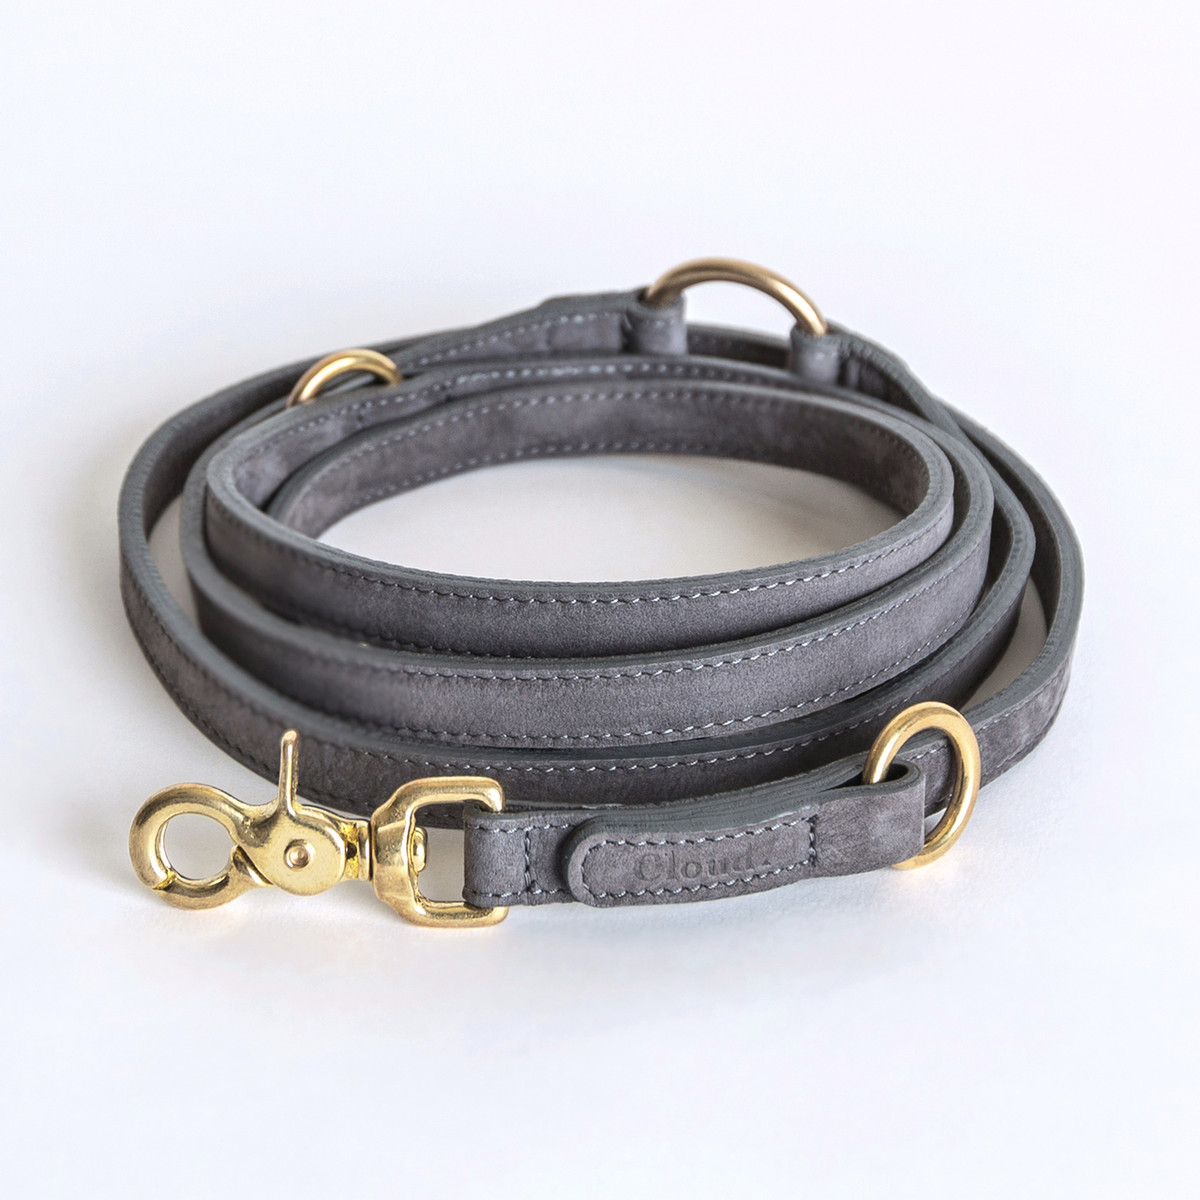 hunter dog harness size guide